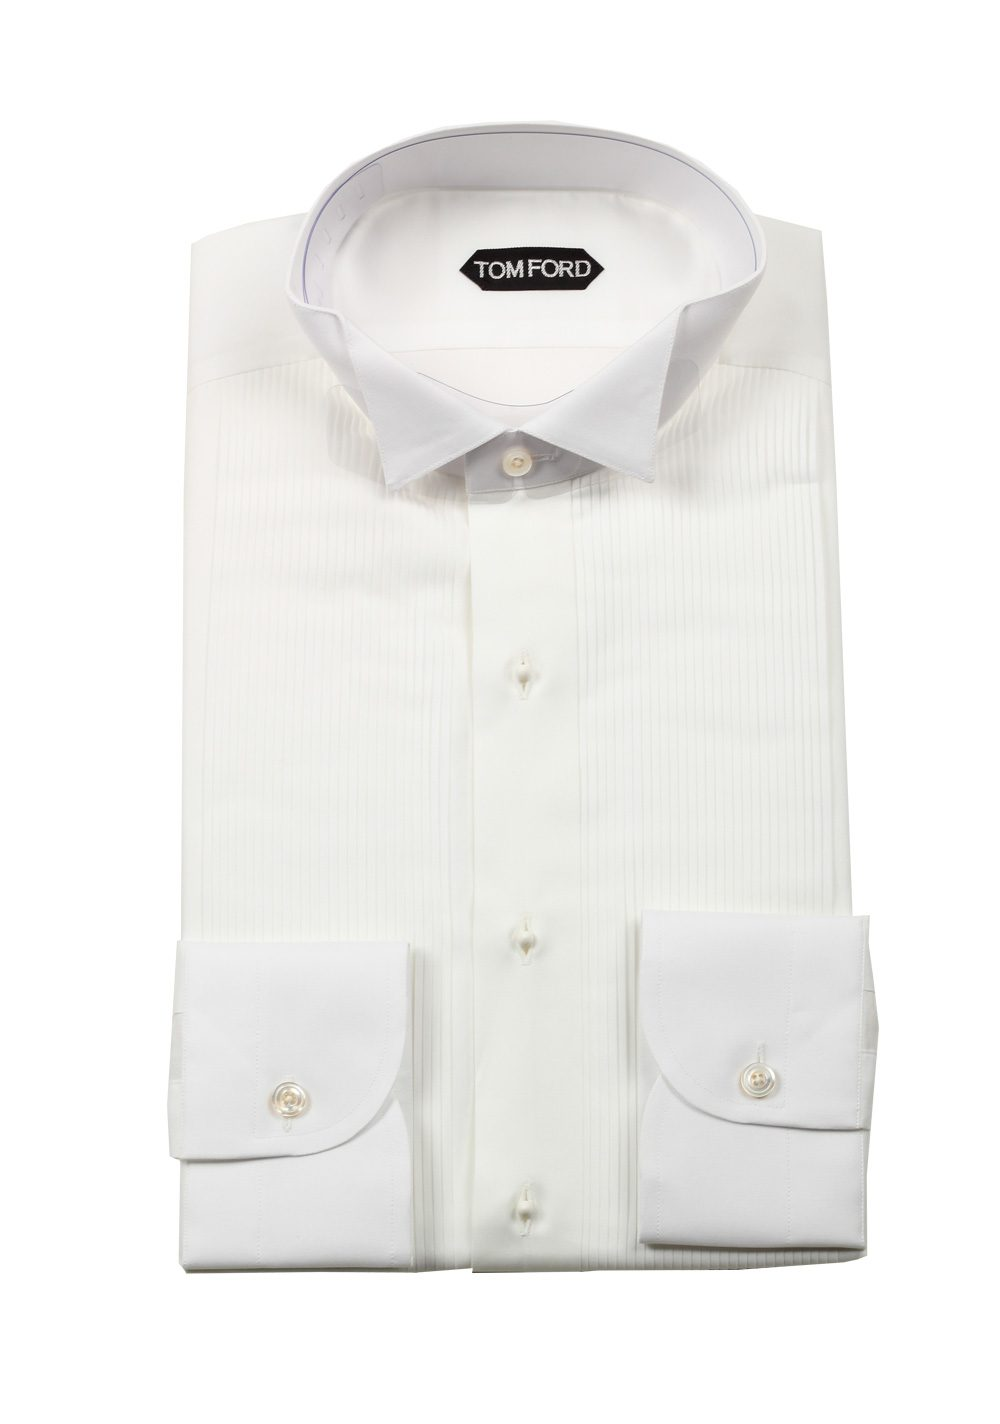 TOM FORD Solid White Tuxedo Shirt Size 41 / 16 U.S. | Costume Limité